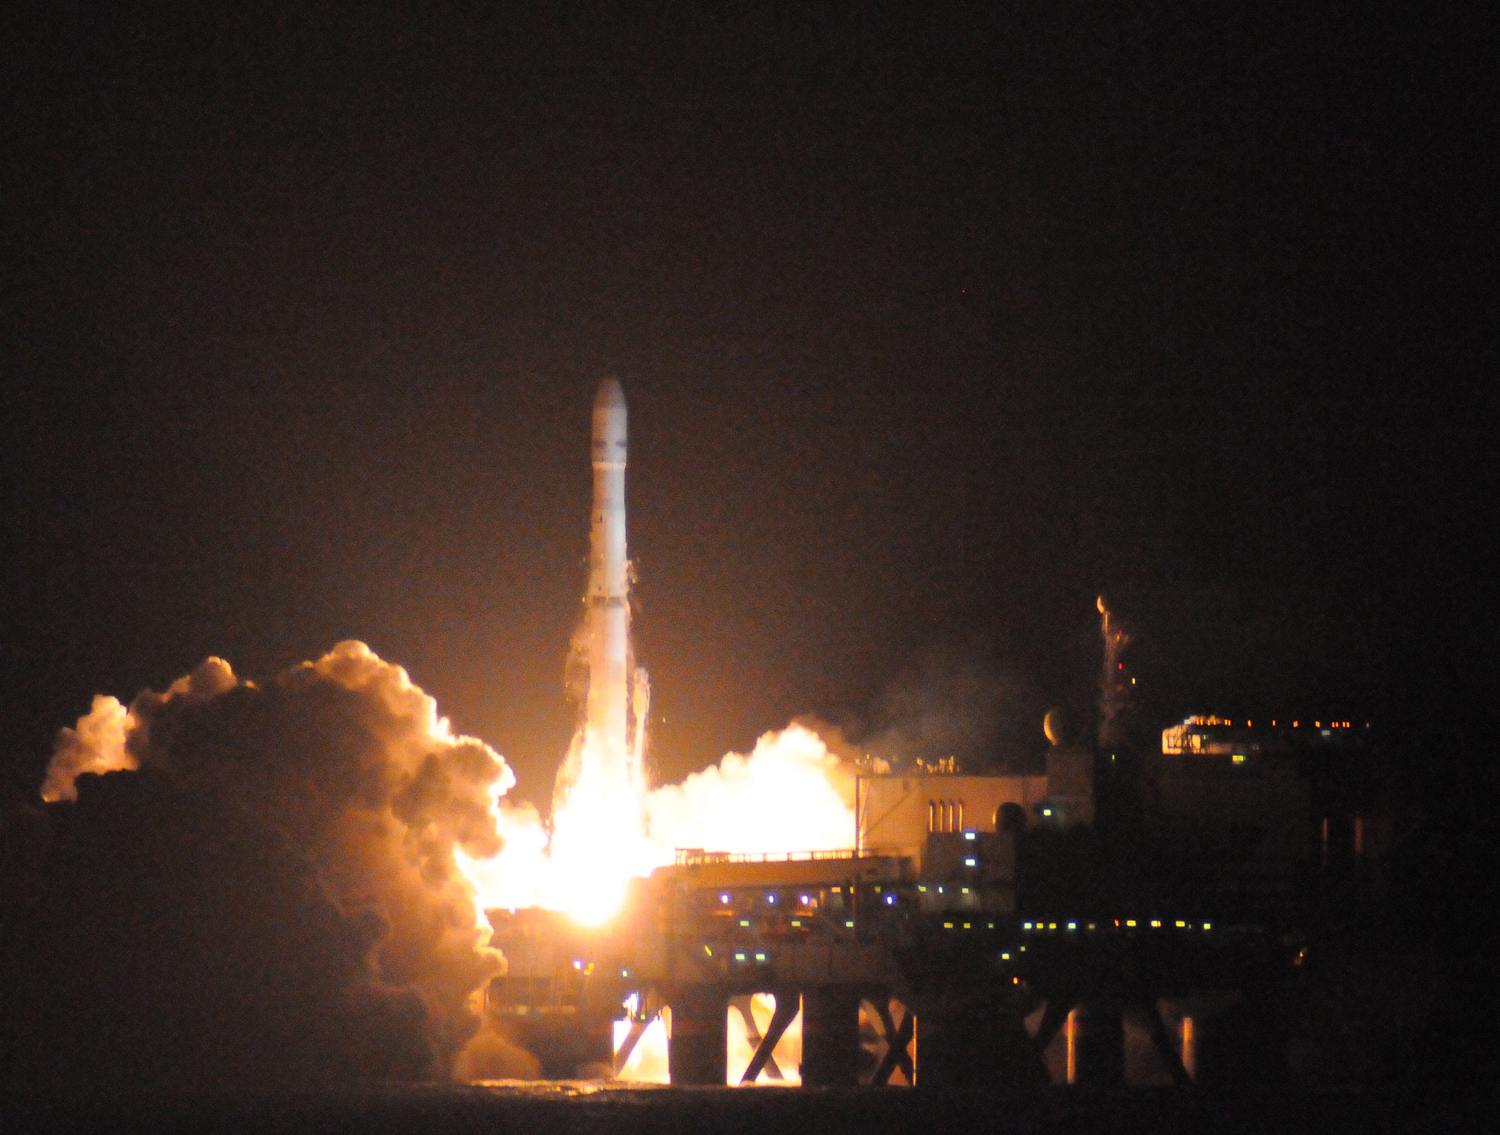 Sea Launch Rocket Lofts TV Satellite Into Orbit